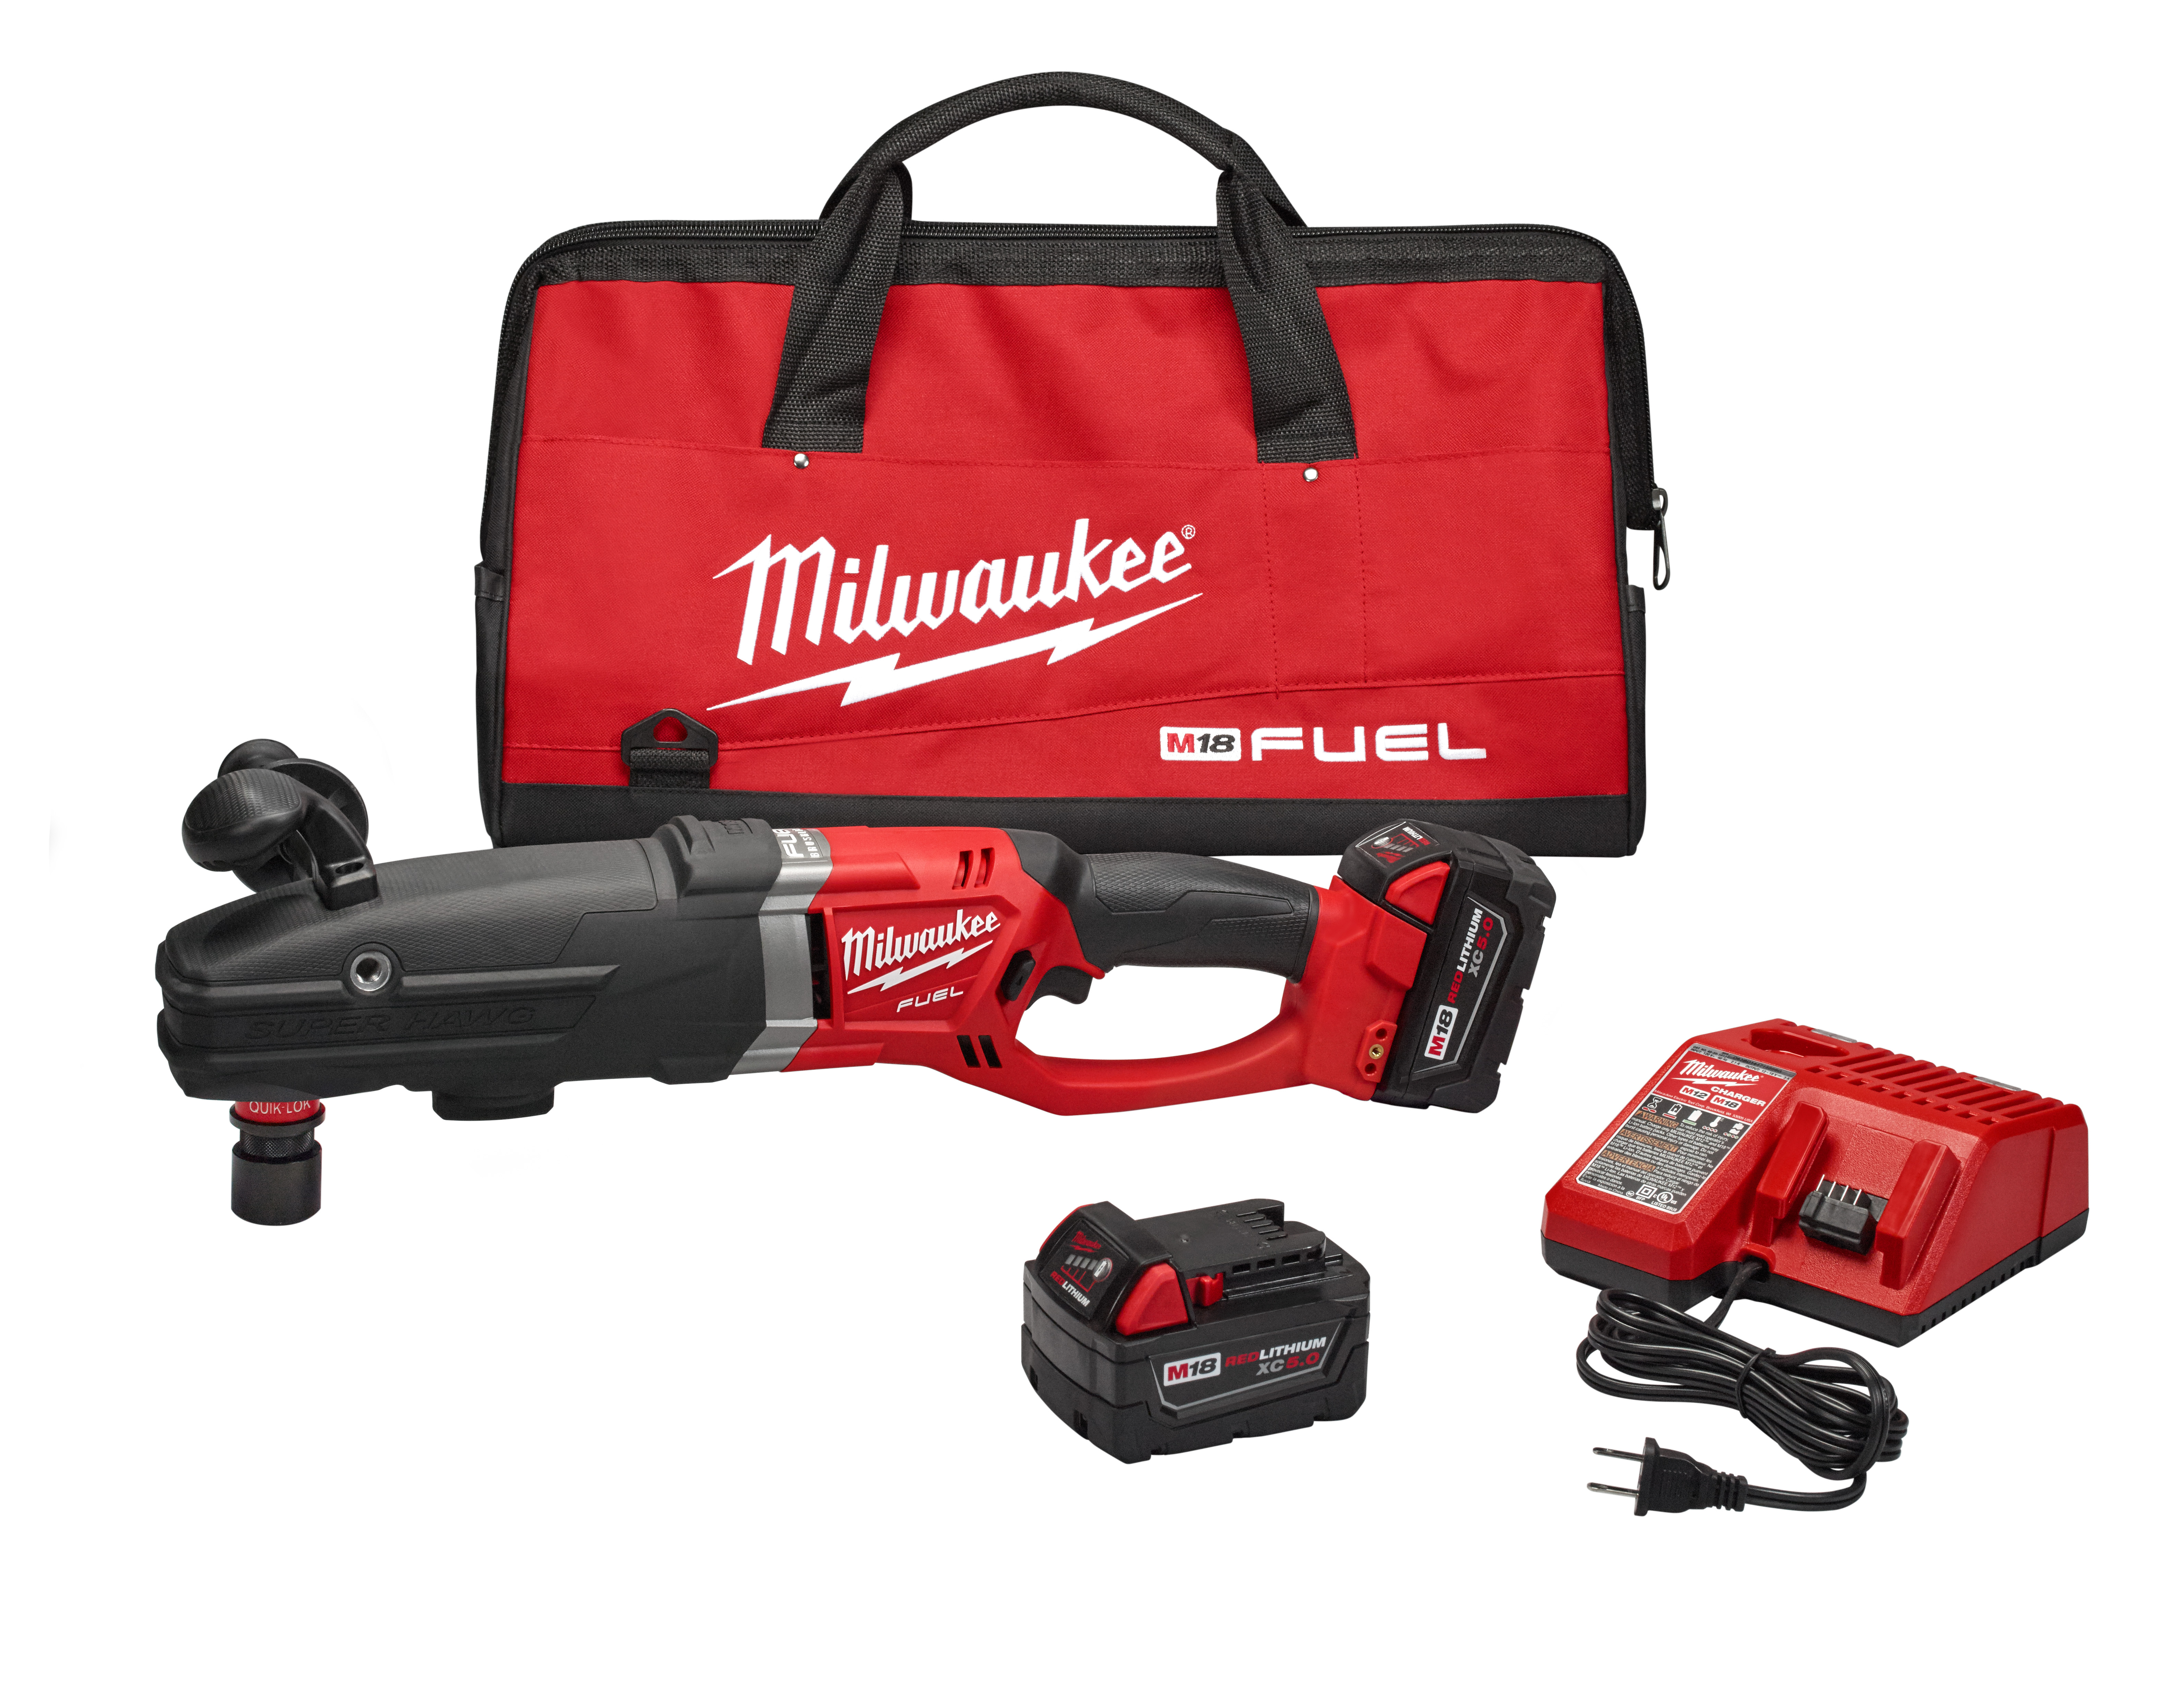 Milwaukee® M18™ FUEL™ SUPER HAWG® 2711-22 SUPER HAWG® Hex Cordless Right Angle Drill Kit, 7/16 in Keyless/QUIK-LOK™ Chuck, 18 VDC, 0 to 350/0 to 950 rpm No-Load, 22 in OAL, Lithium-Ion Battery